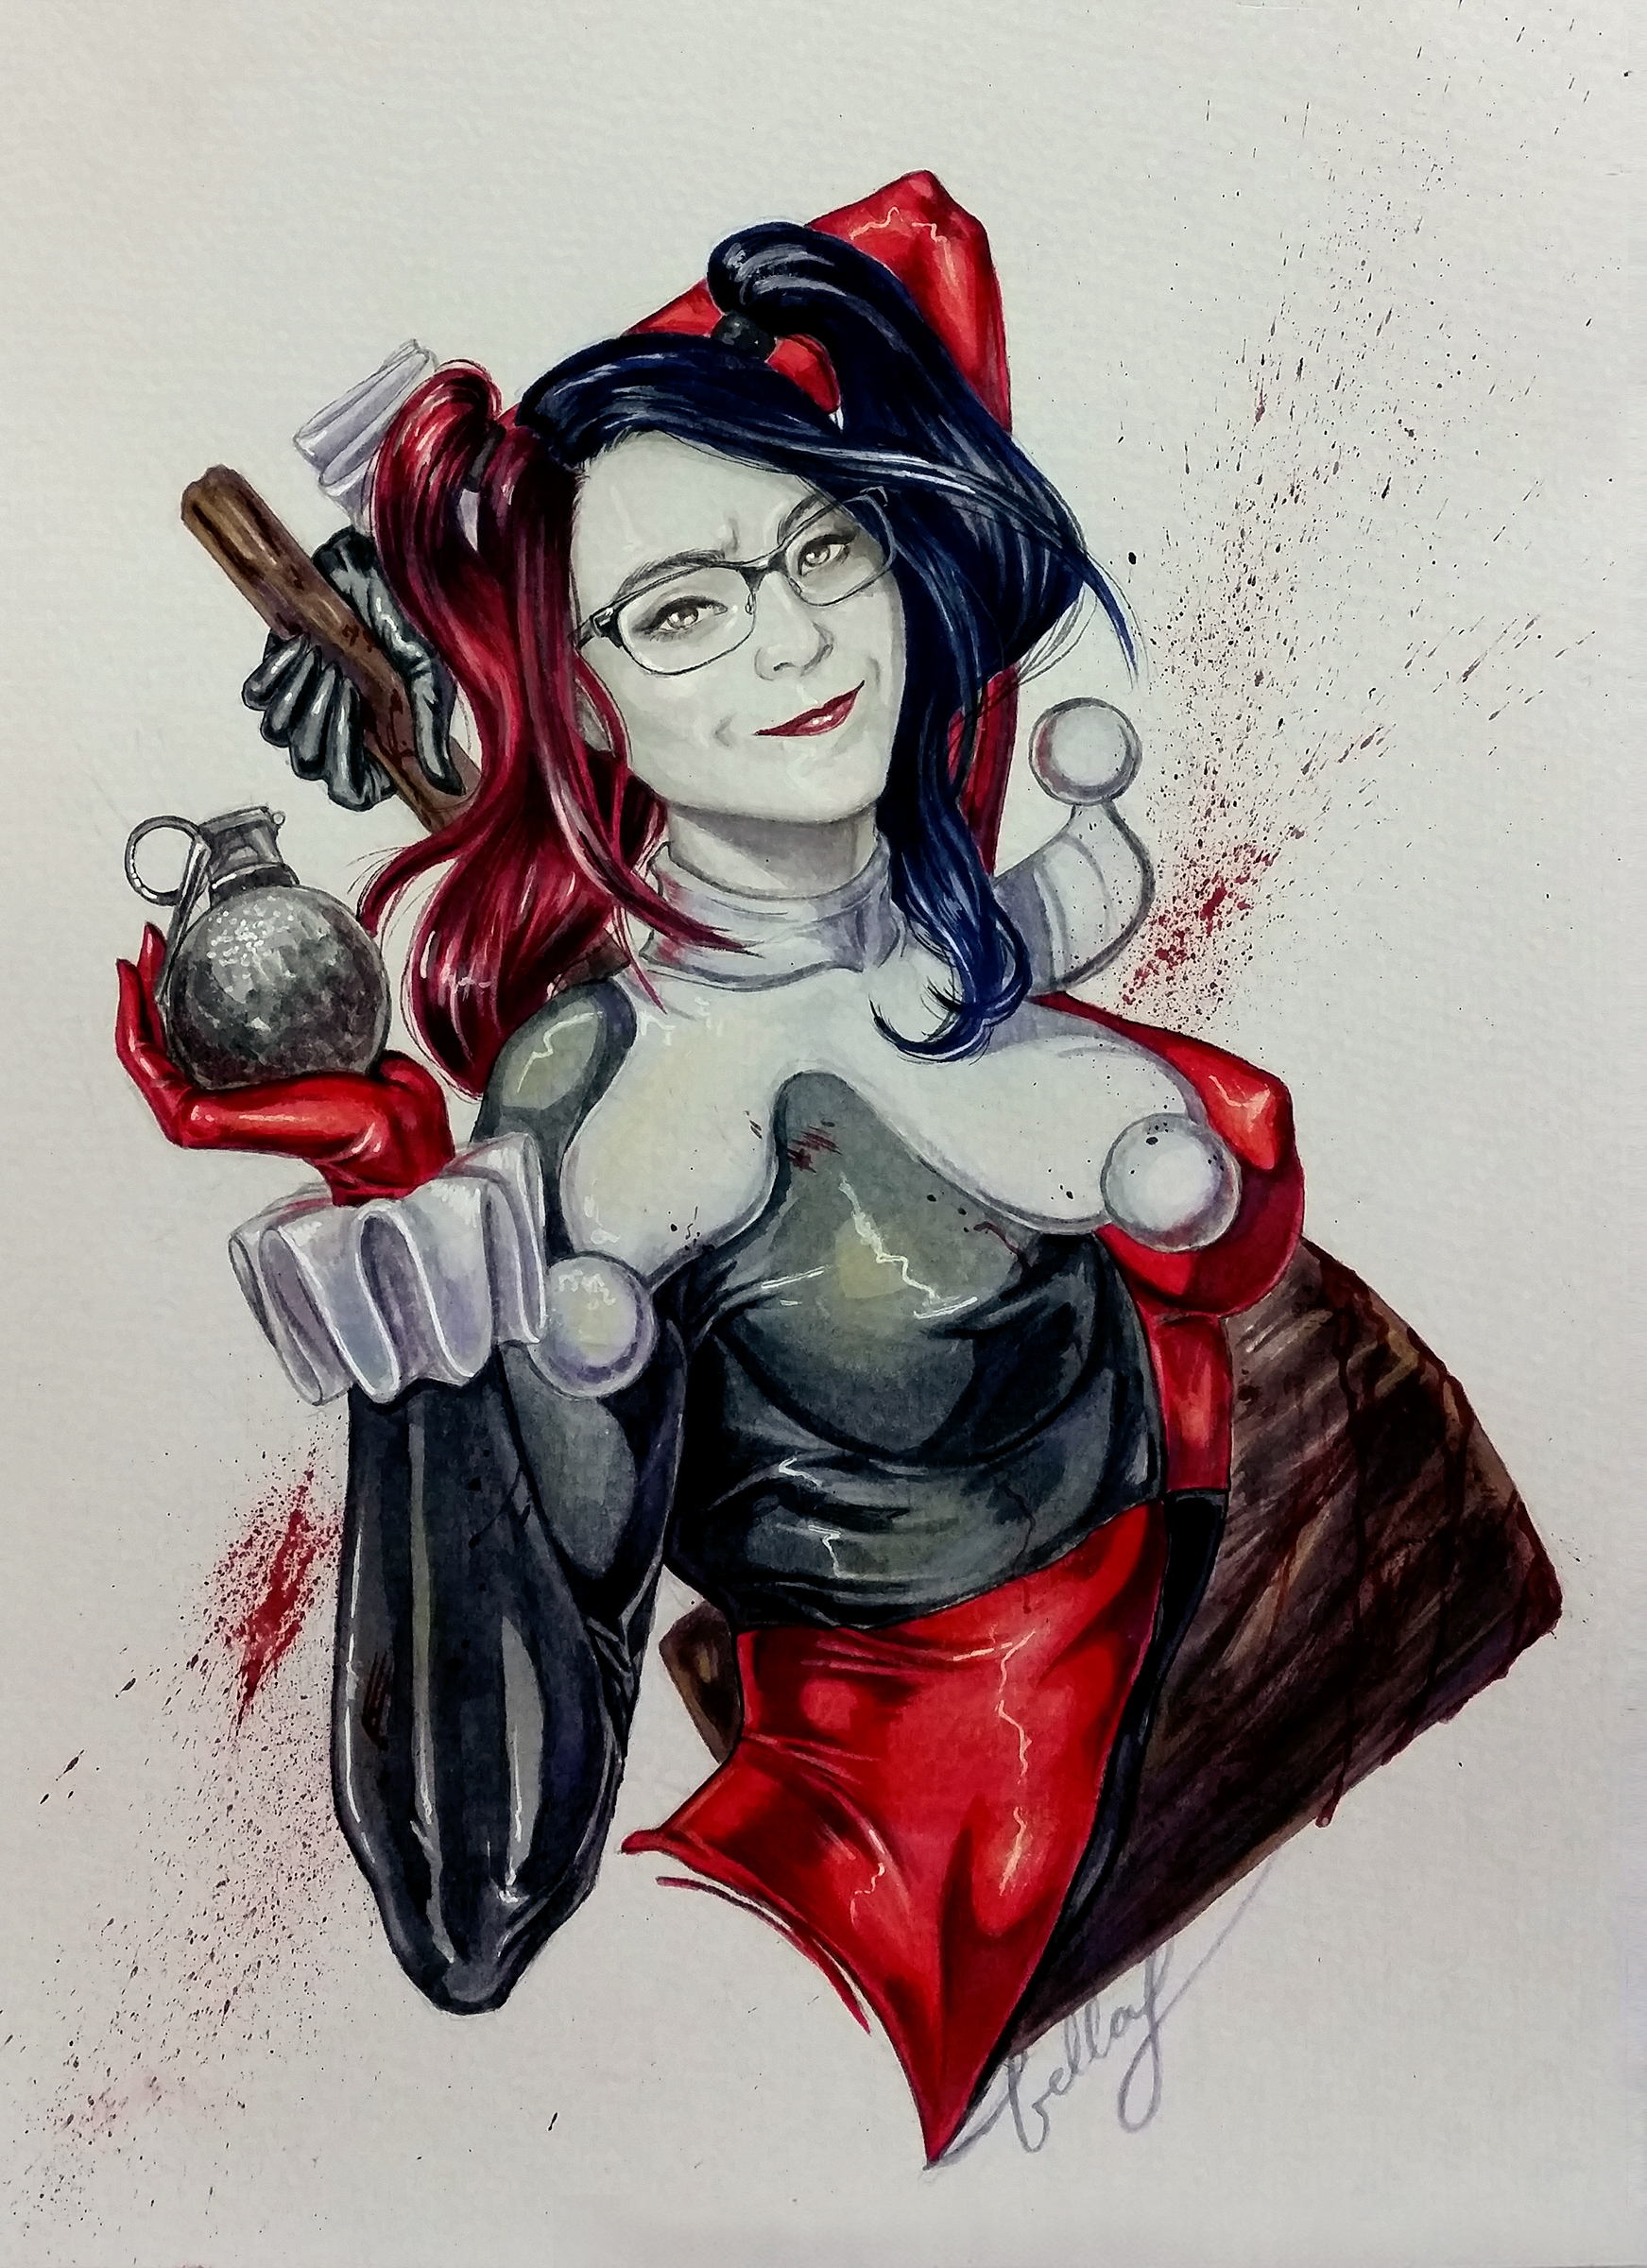 Geeky Harley commission